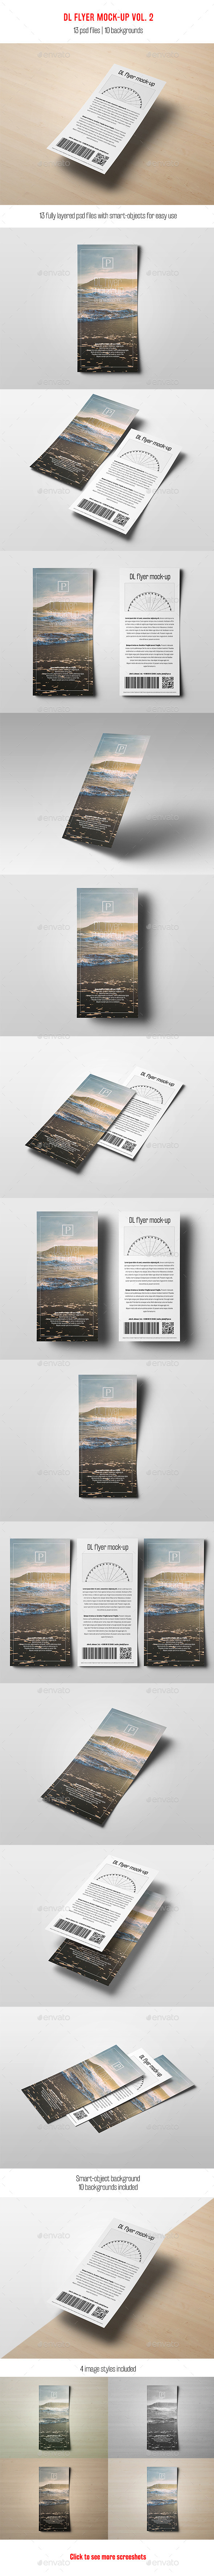 DL Flyer Mock-Up vol. 2 - Flyers Print